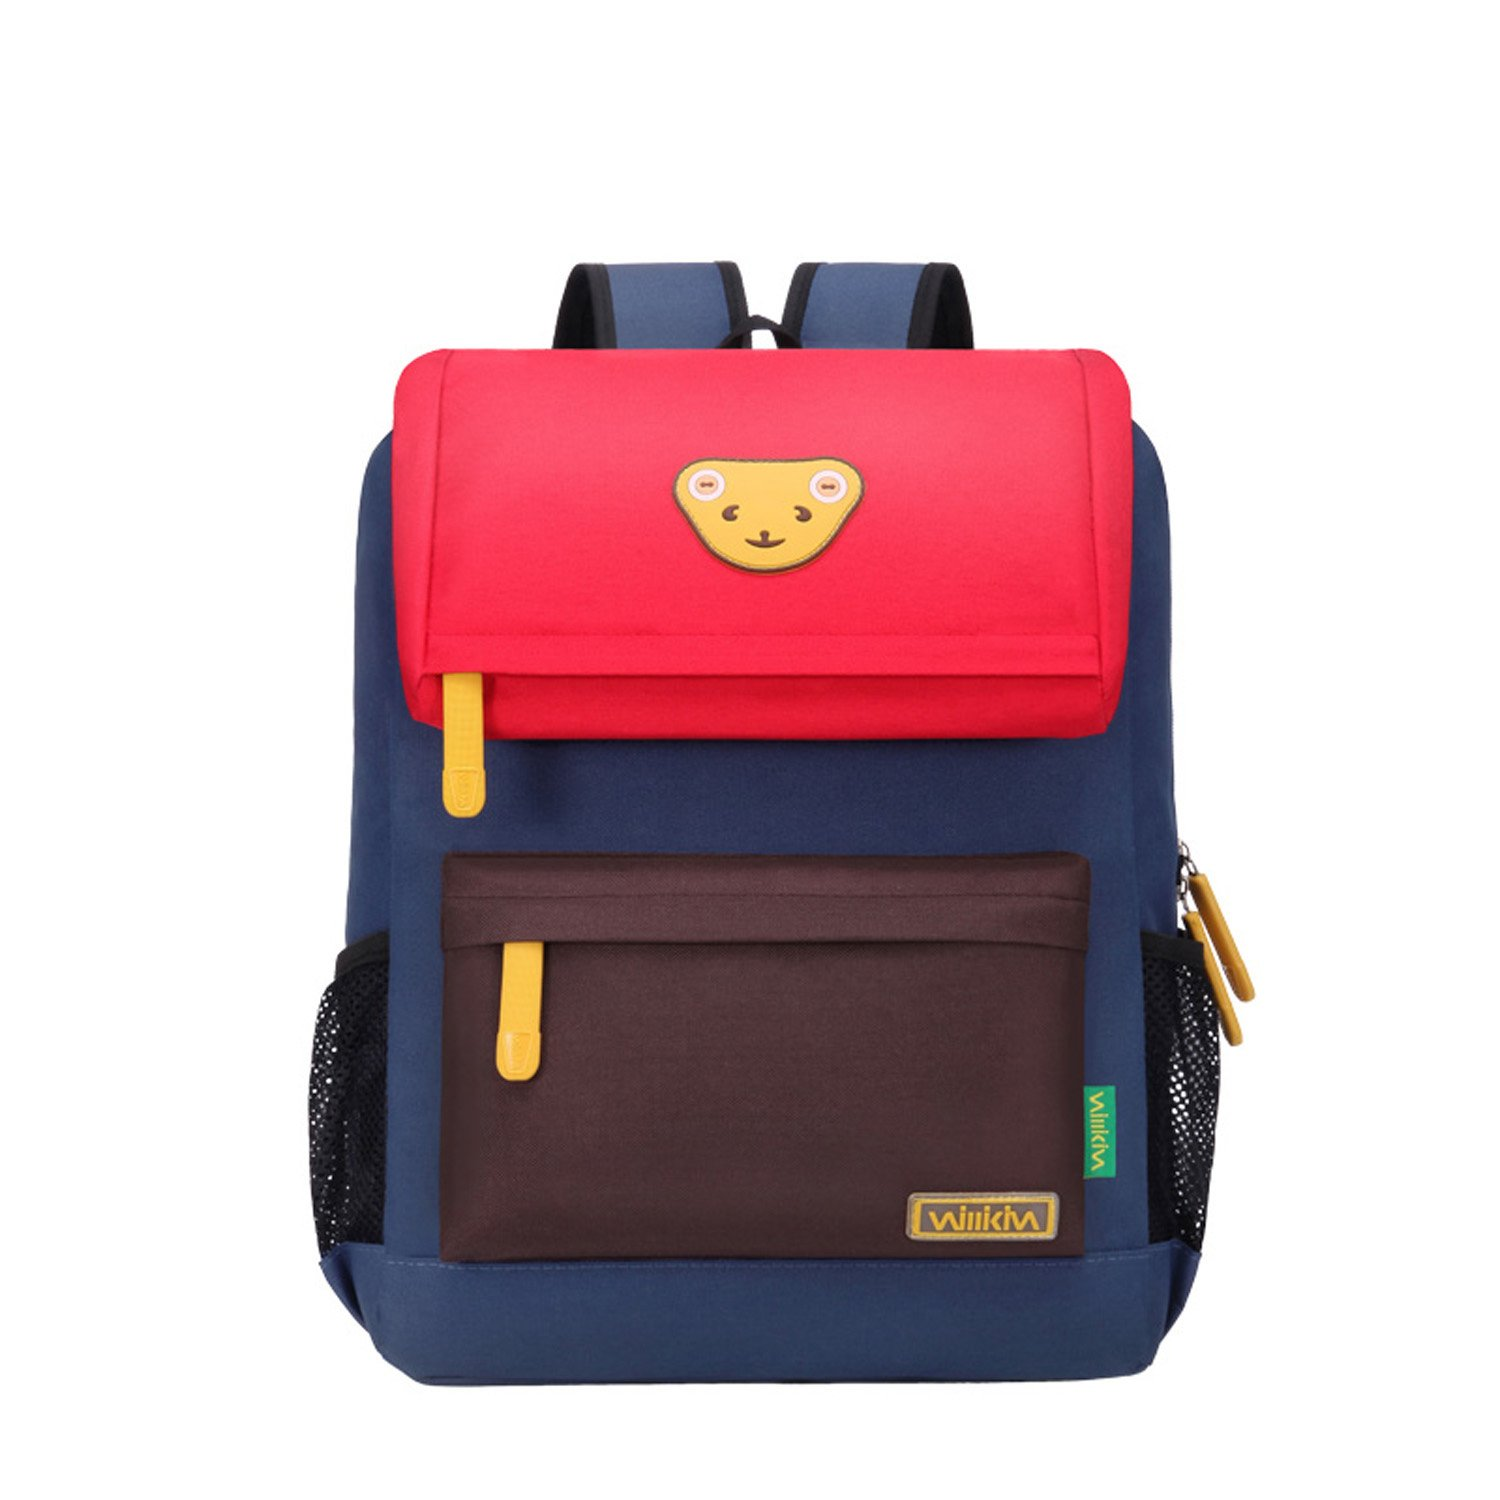 Willikiva Cute Bear Kids School Backpack for Children Elementary School Bags Girls Boys Bookbags (Red/Coffee/Royalblue, Small)